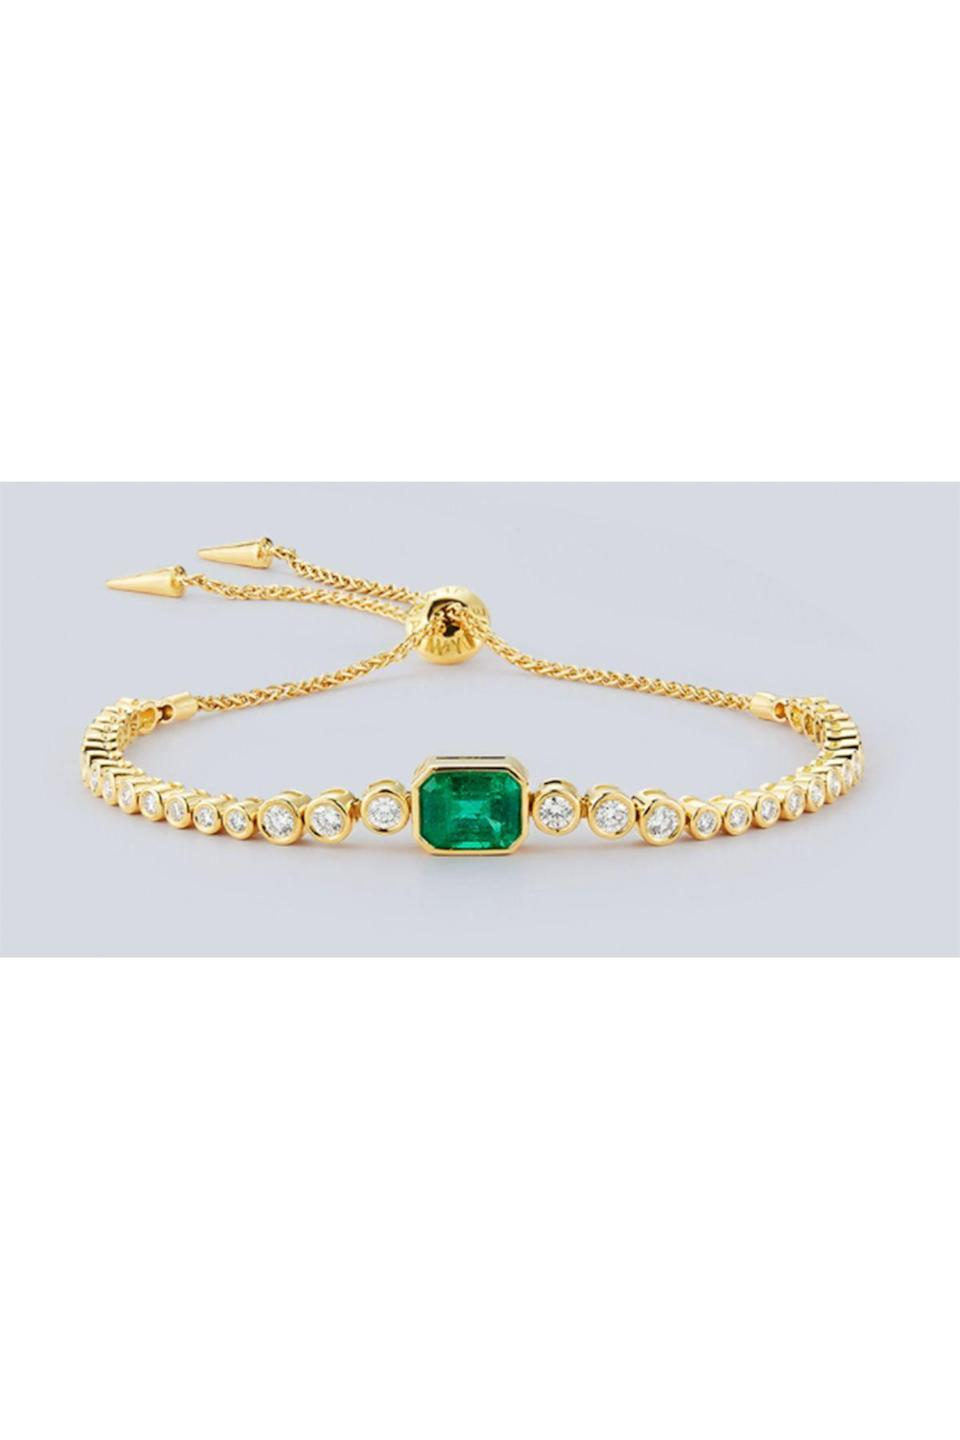 """<p><strong>Jemma Wynne</strong></p><p>jemmawynne.com</p><p><strong>$12915.00</strong></p><p><a href=""""https://jemmawynne.com/jewelry/prive-luxe-colombian-emerald-and-diamond-slider-bracelet/"""" rel=""""nofollow noopener"""" target=""""_blank"""" data-ylk=""""slk:Shop Now"""" class=""""link rapid-noclick-resp"""">Shop Now</a></p><p>Jemma Wynne created a stunning emerald moment—it can be worn casually, but those gems take your outfit to the next level.</p>"""